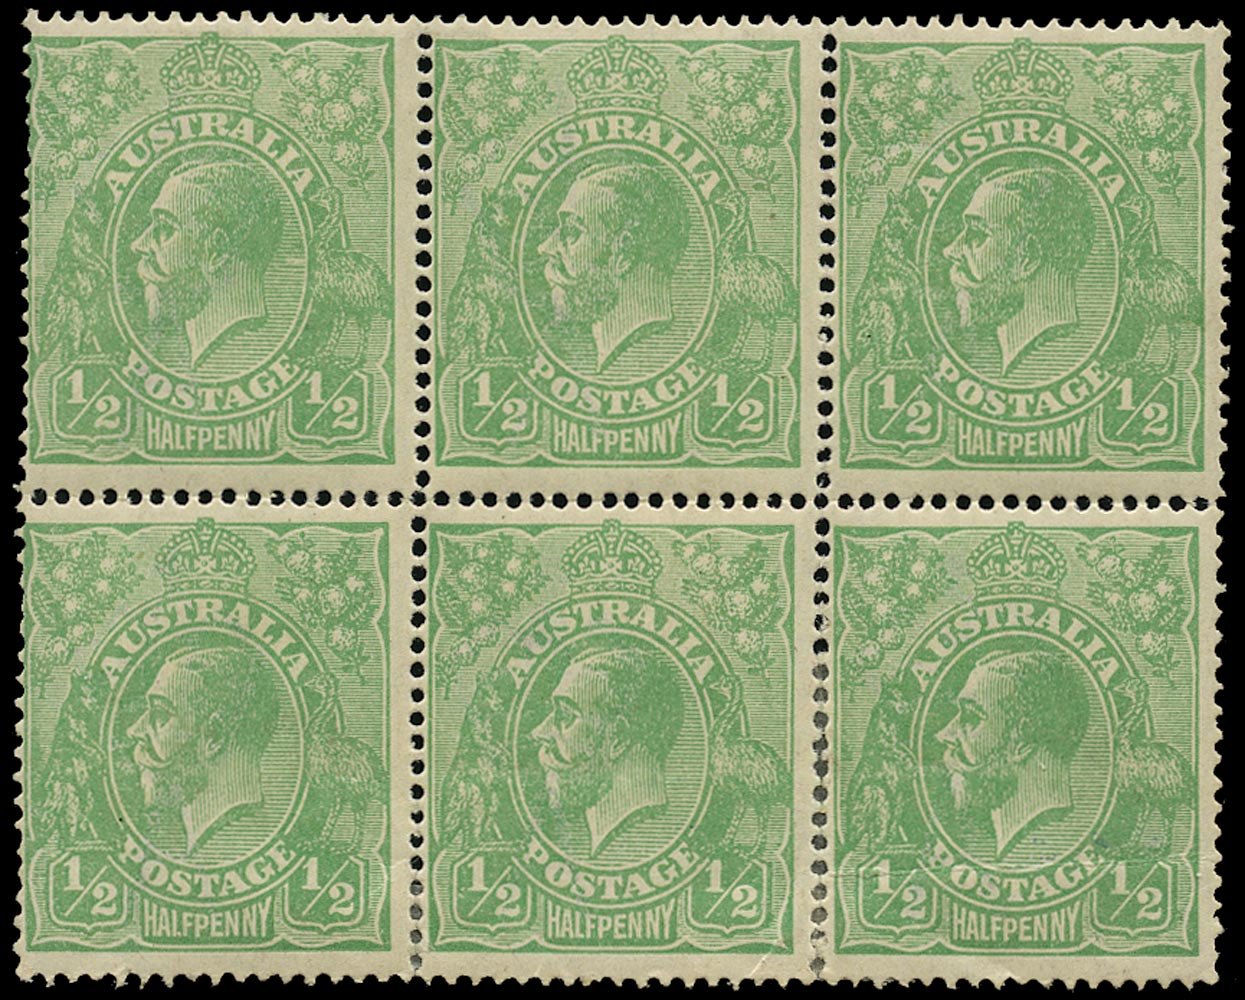 AUSTRALIA 1914  SG20 var Mint KGV ½d green wmk 5 electro 6 Retouch behind King's head and White flaw under shield